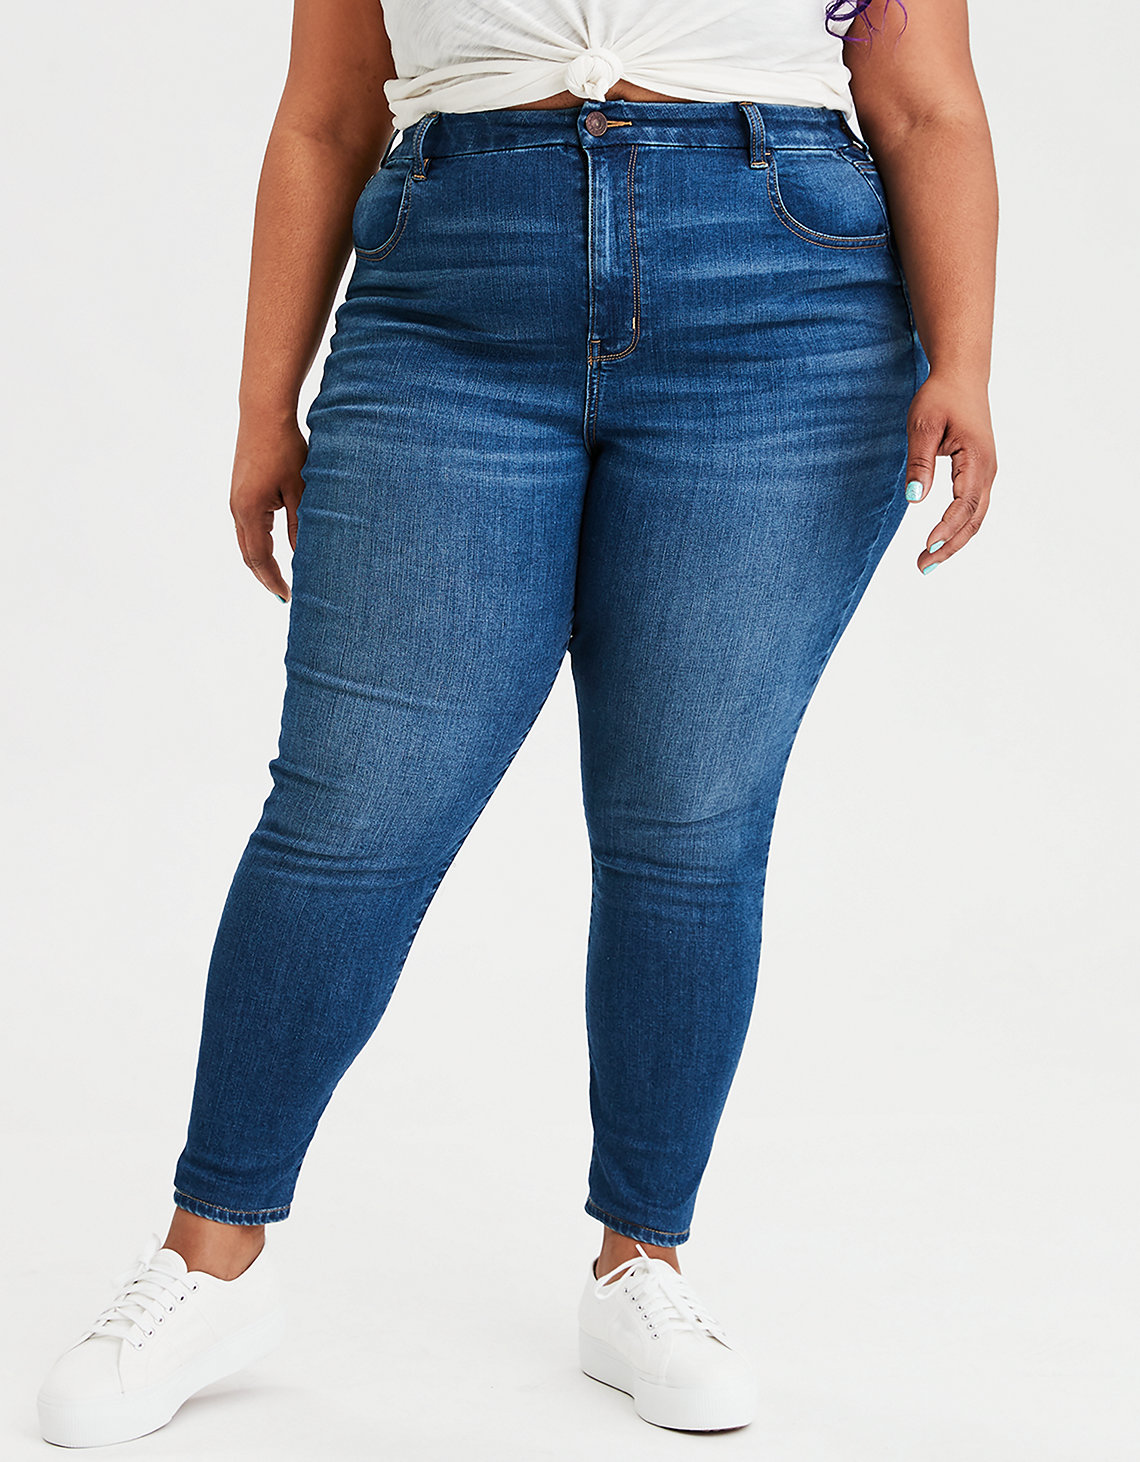 Ae Ne(X)T Level Curvy High Waisted Jegging by American Eagle Outfitters